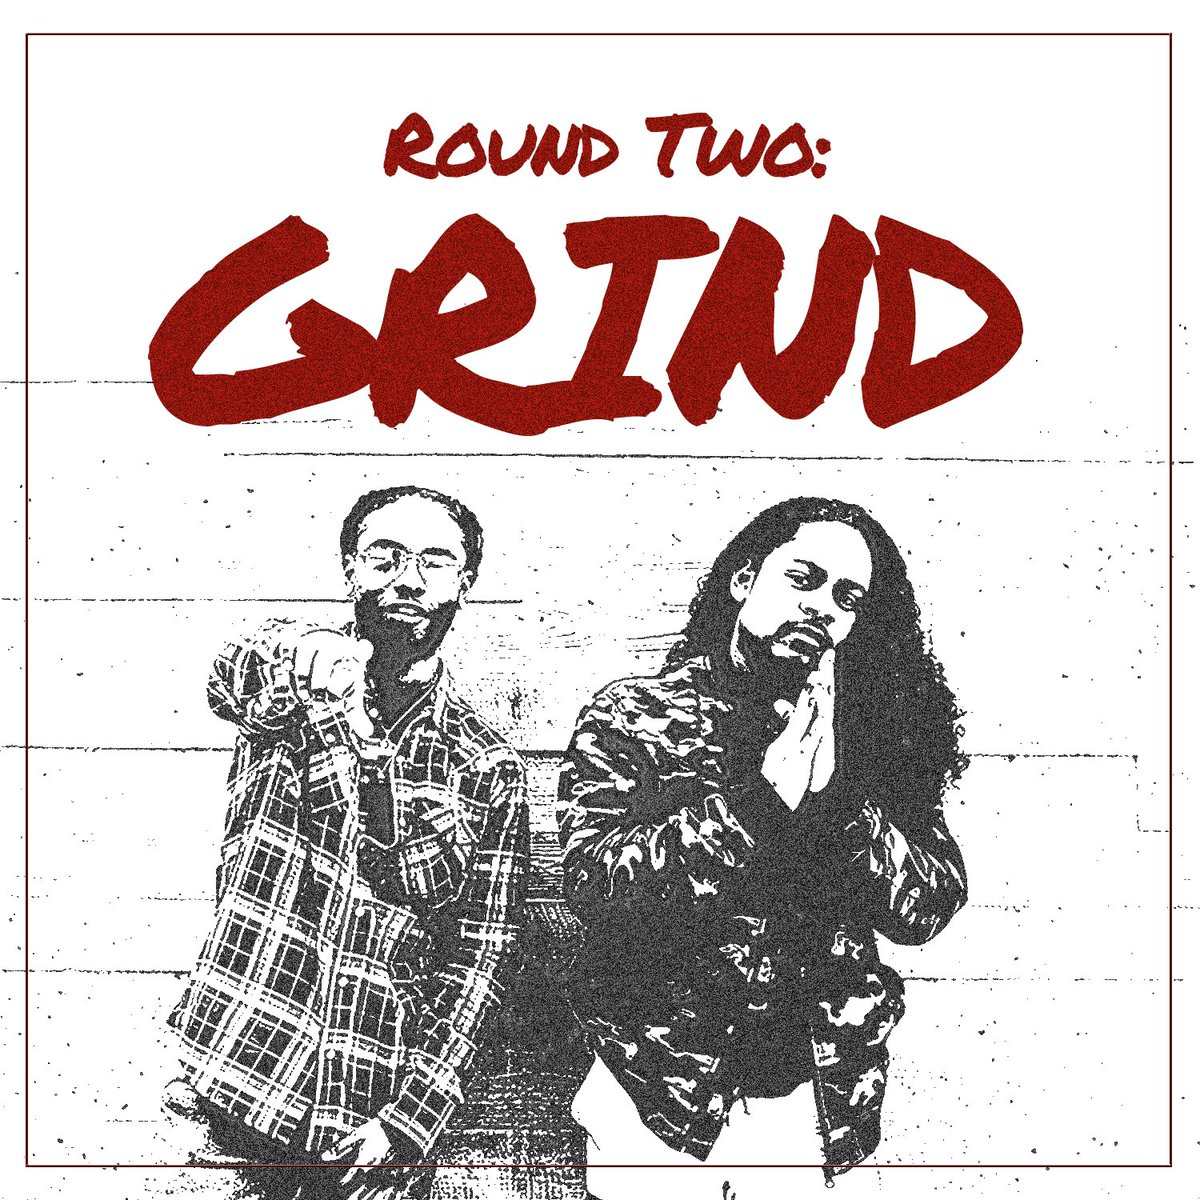 OUT NOW!!! Me and @FreeStreeb are back at it with Round Two bayybeeeeeeee!!!! #NewMusicAlert  Click the link to listen RIGHT NOW  https:// unitedmasters.com/king-kairo/r/A nK2hDaSdh6R  … <br>http://pic.twitter.com/66OMmWBcJF